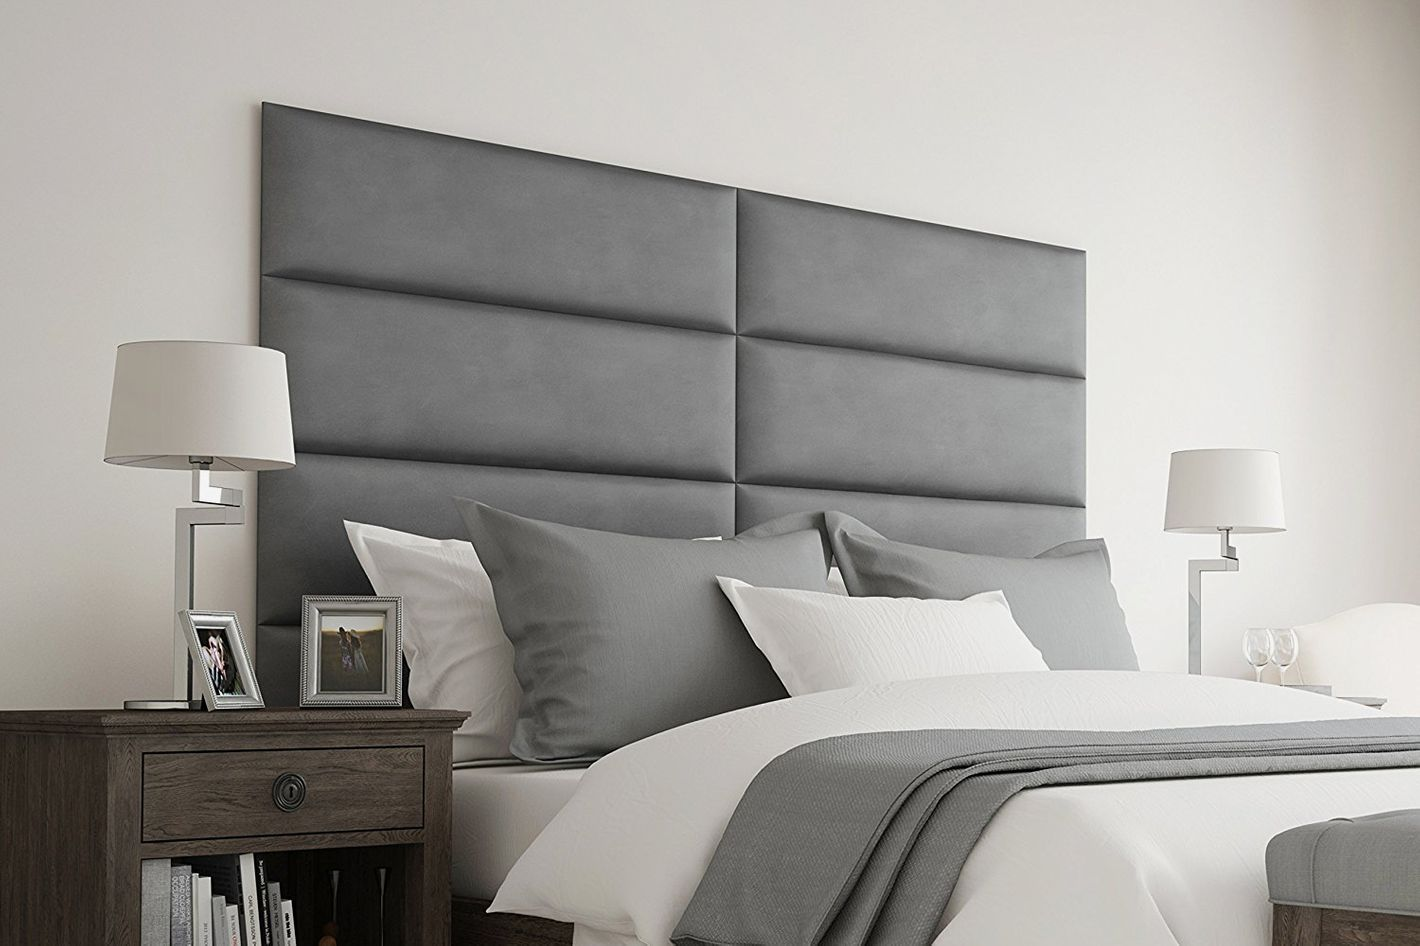 Gray rectangular upholstered headboard tiles.